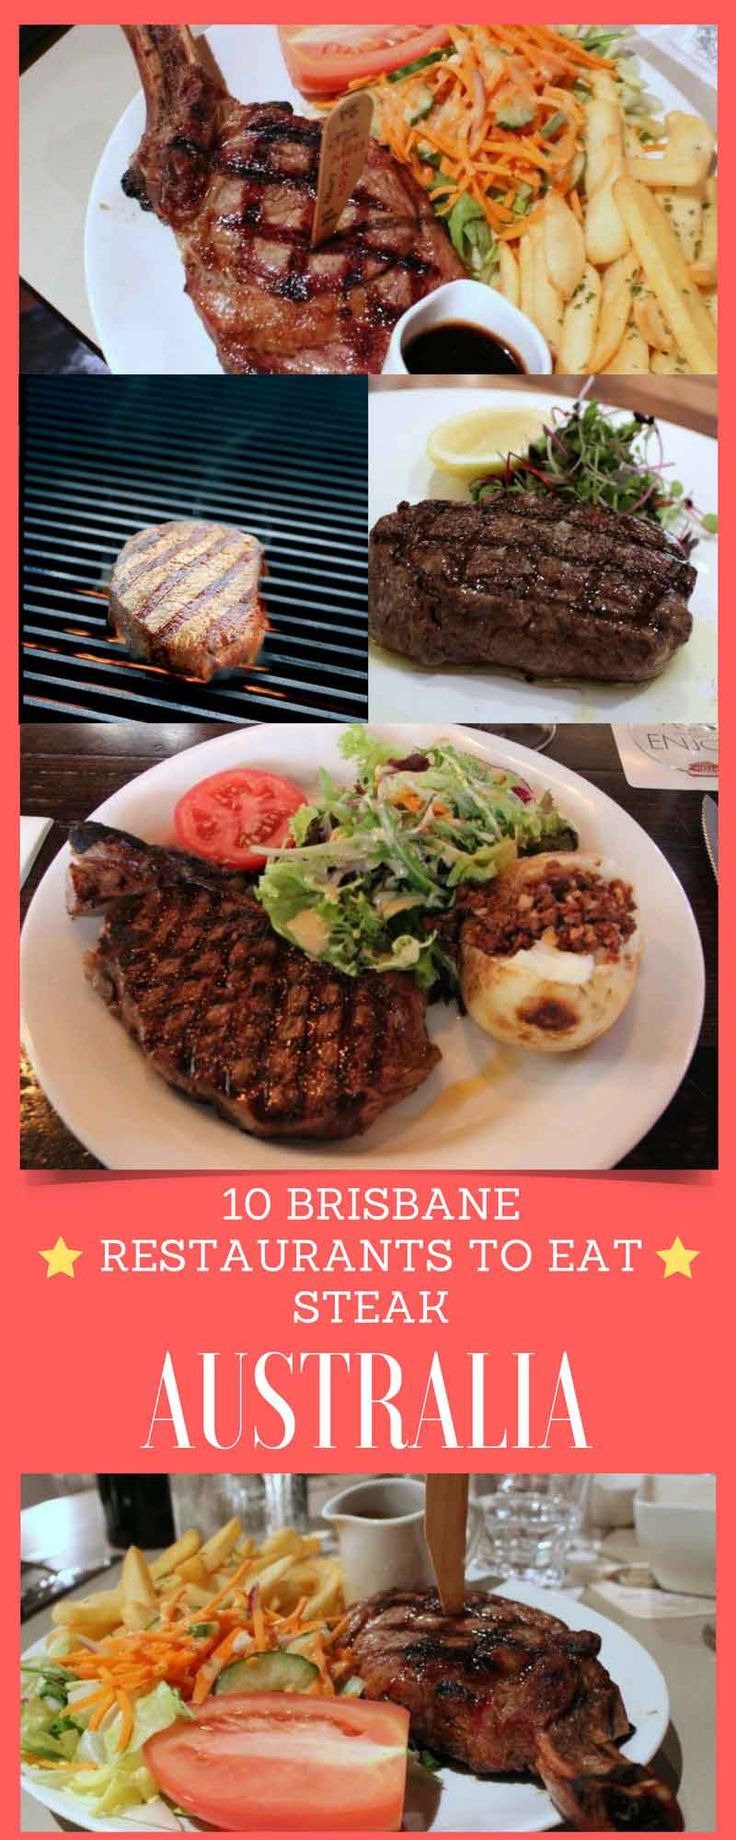 10 Brisbane restaurants to eat steak. Looking for a steak that's a cut above? Tender, juicy and cooked to perfection? Here's 10 Brisbane restaurants that specialise in doing just that and doing it well.